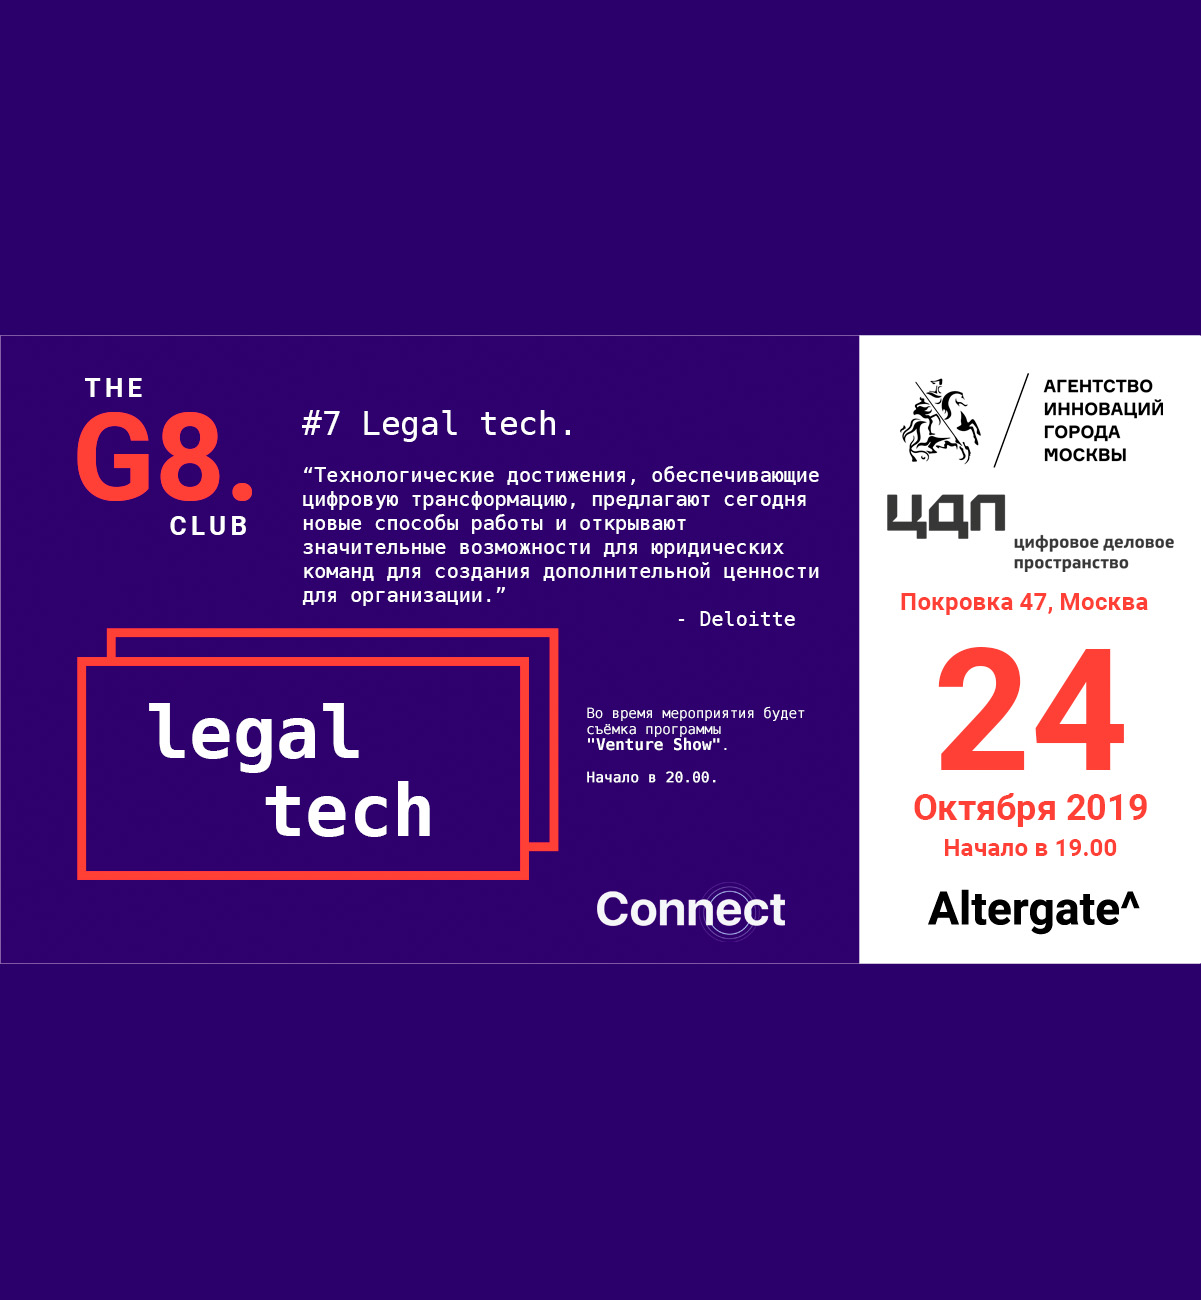 Legal tech / The G8 Club Meetup #7